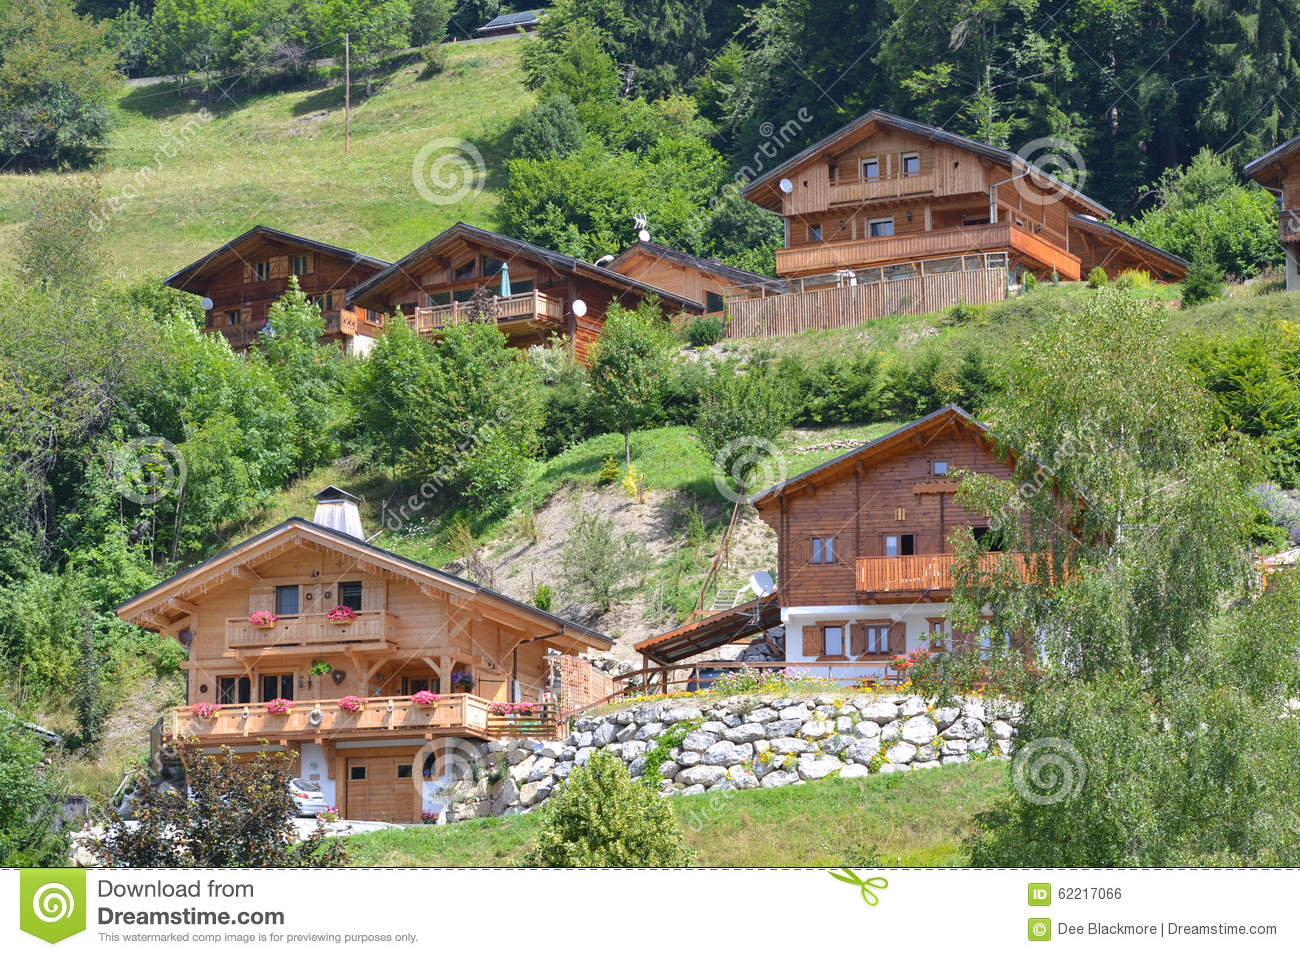 Wooden Chalets/Lodge in On Alpine Mountain